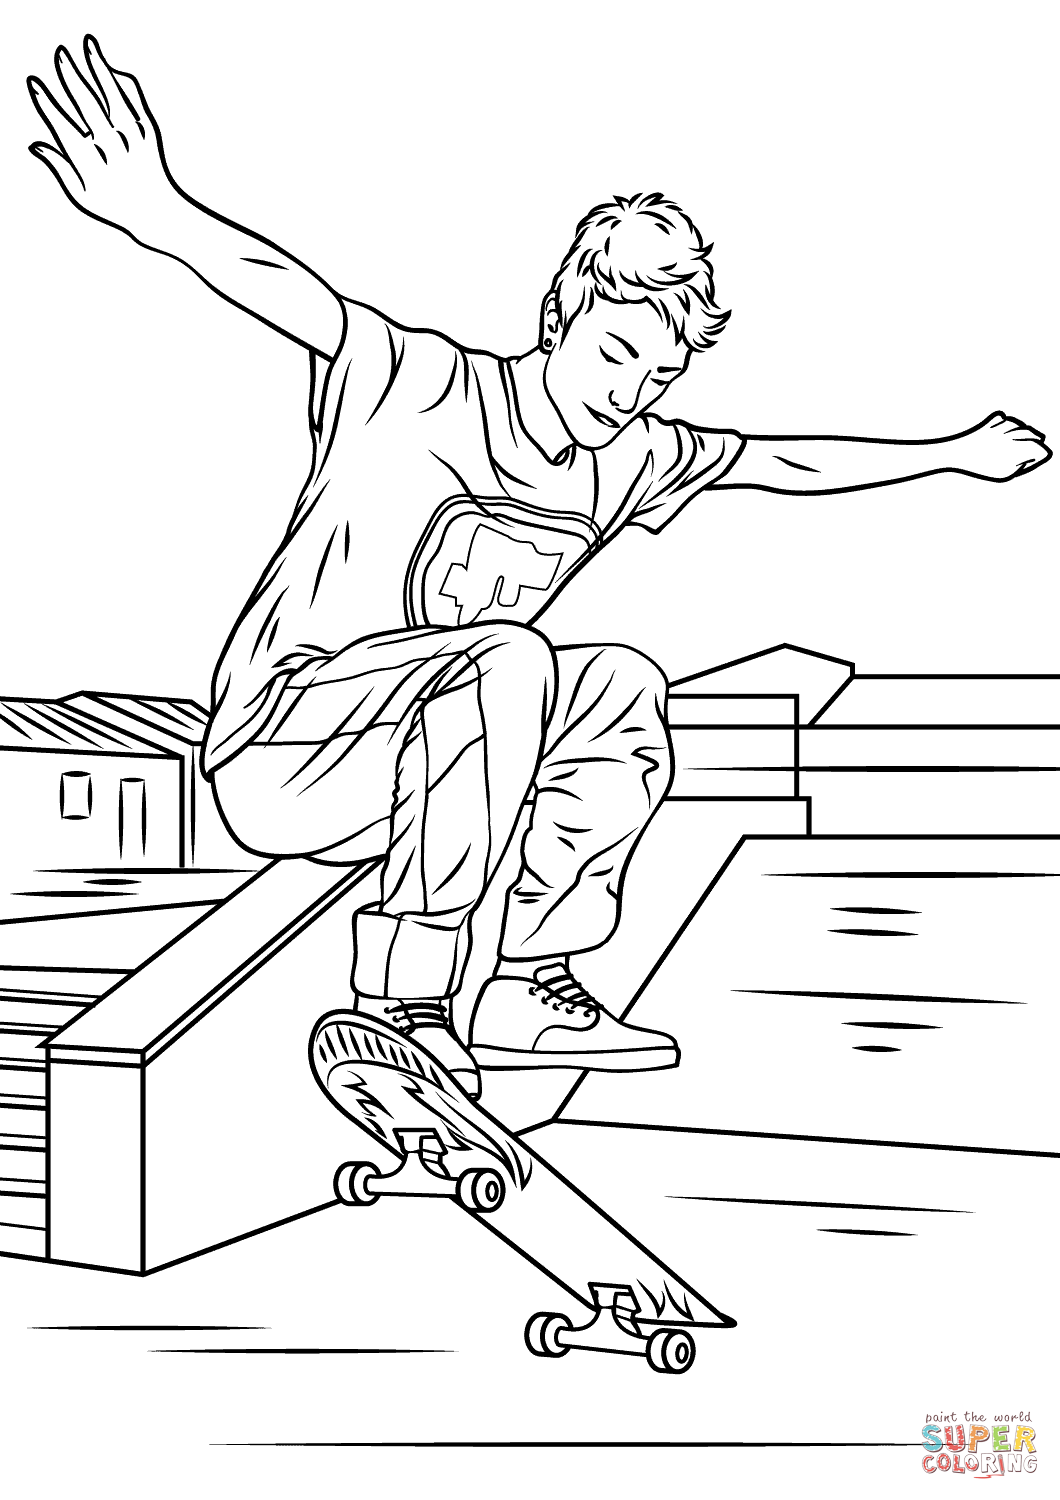 skateboard colouring pages skateboard coloring pages get coloring pages skateboard pages colouring